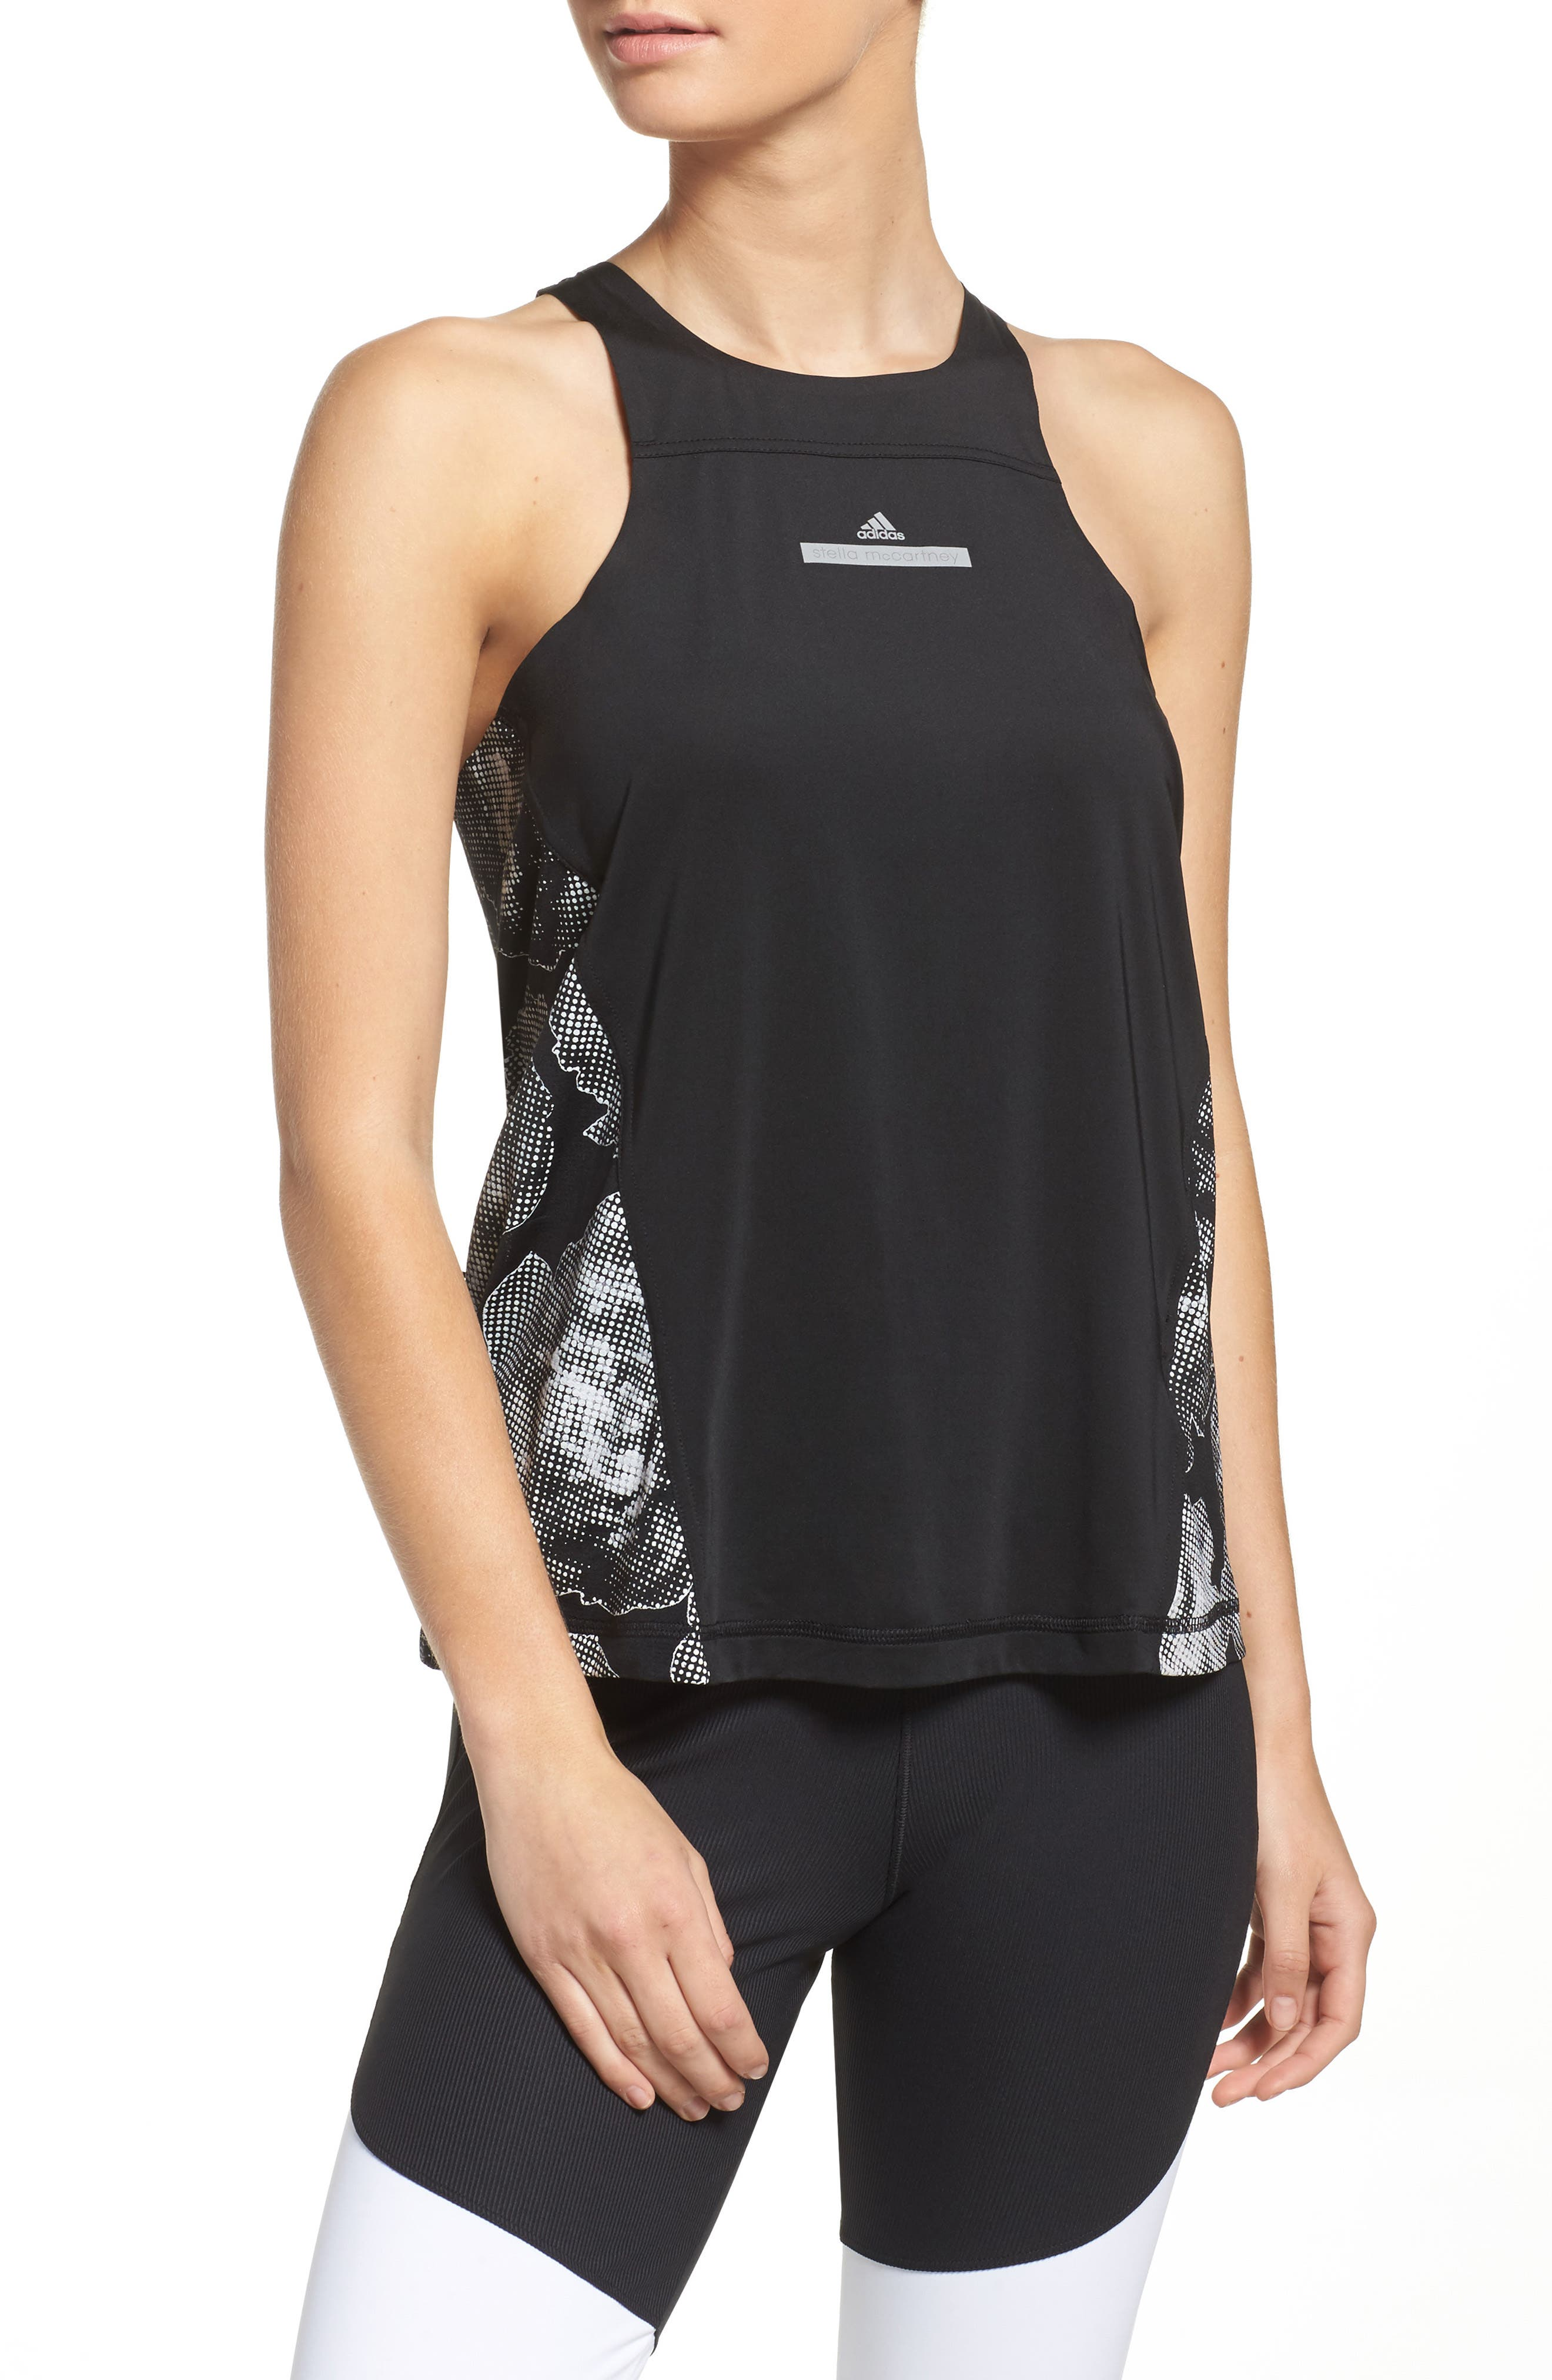 Alternate Image 1 Selected - adidas by Stella McCartney Run Adizero Tank